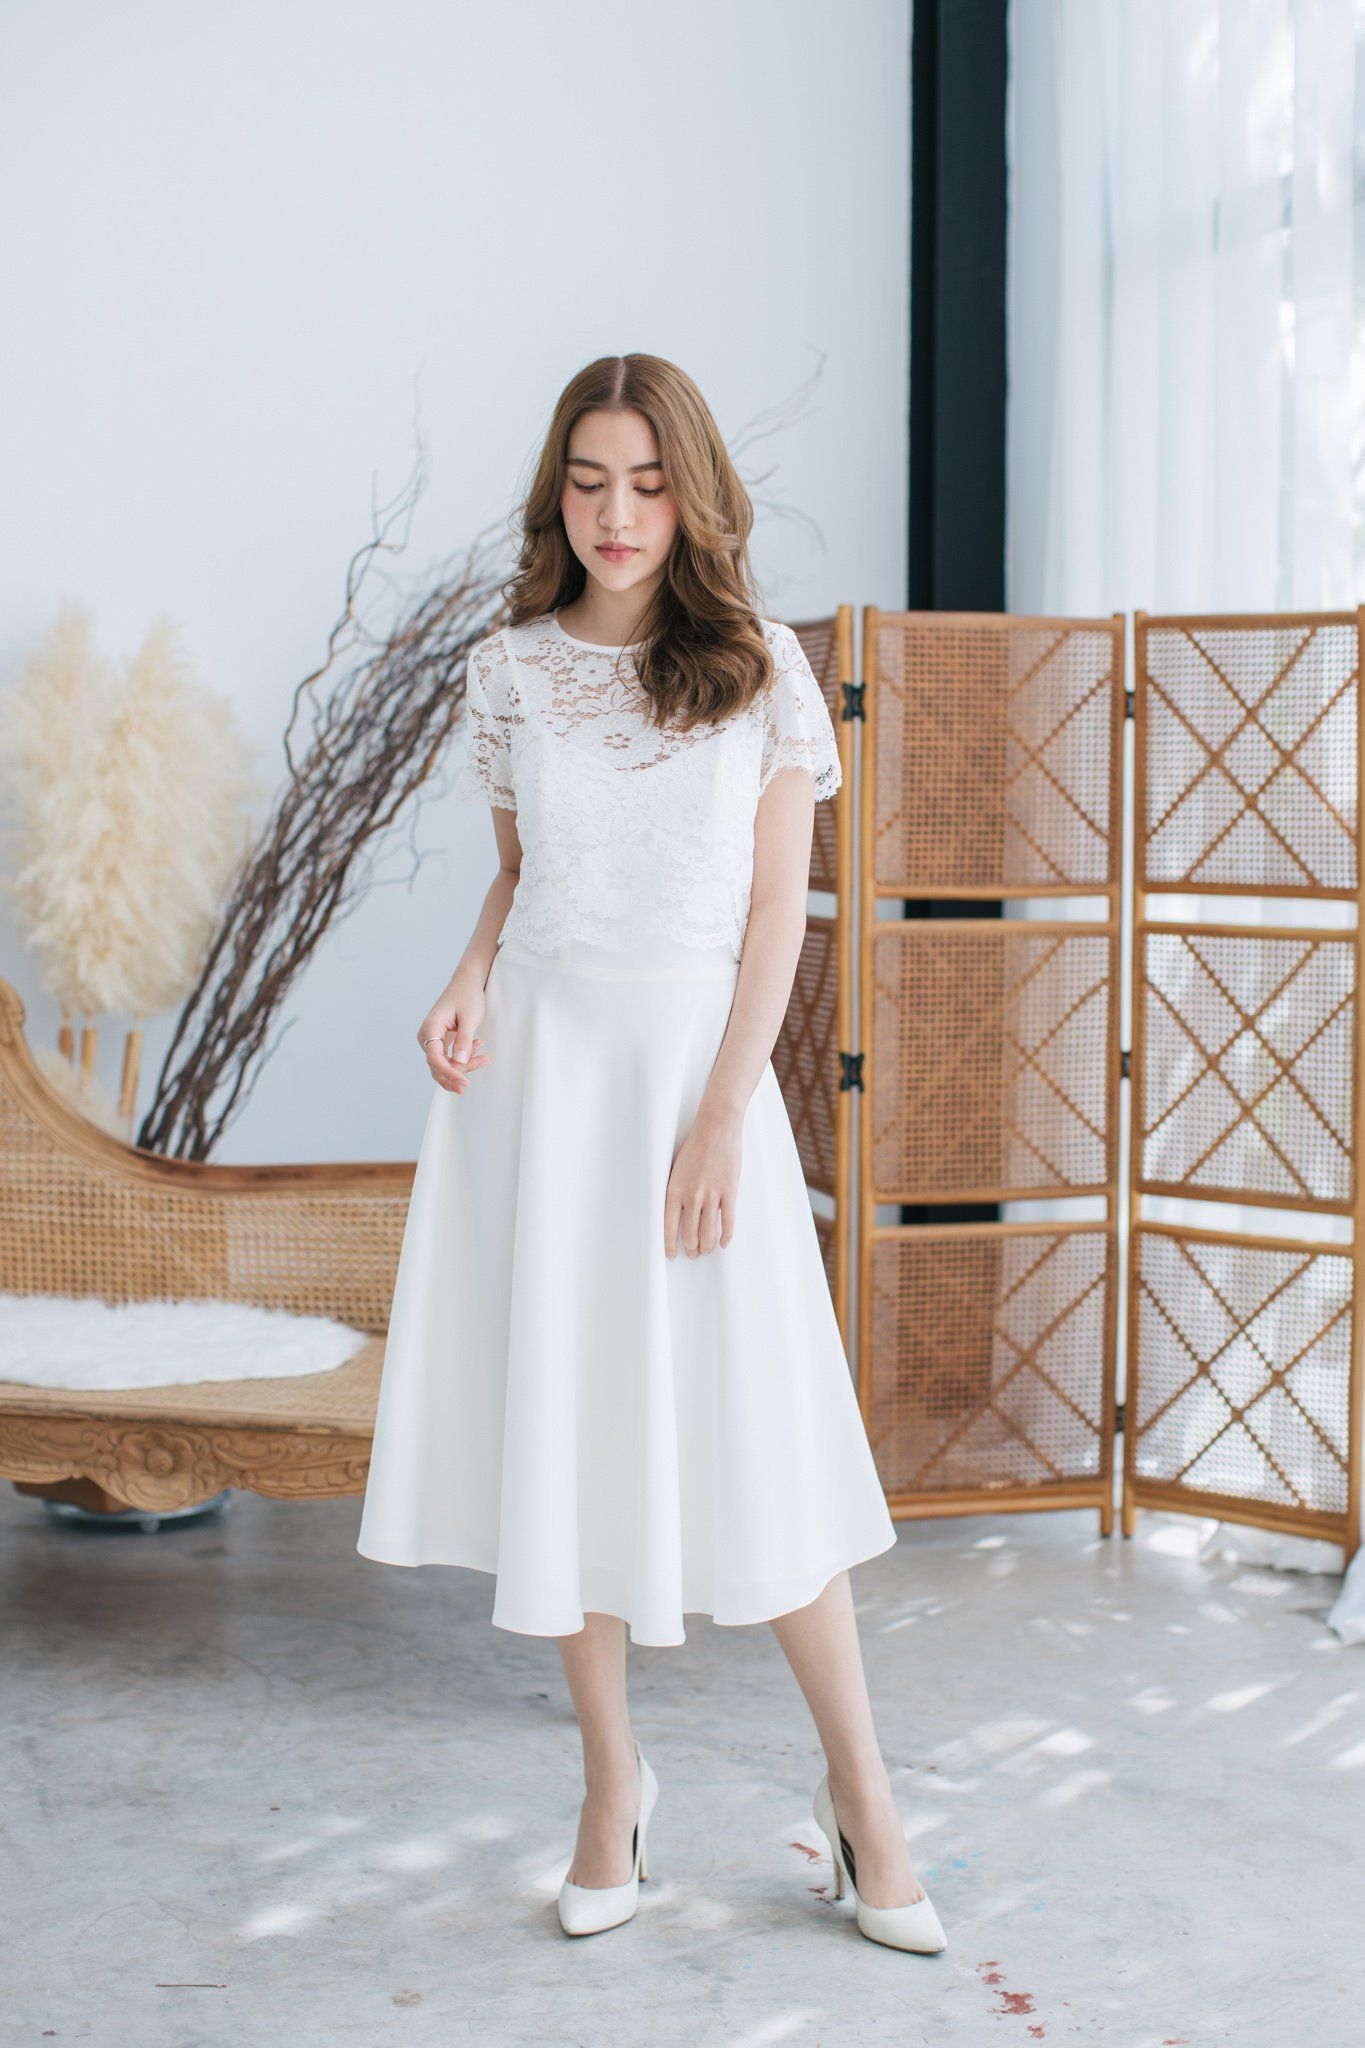 White Dress Lace Top See Through And Inner Straps White Dress White Wedding Dress Bridal Gown Wedding Gown Formal Receptio White Dress Lace White Dress Dresses [ 2048 x 1365 Pixel ]